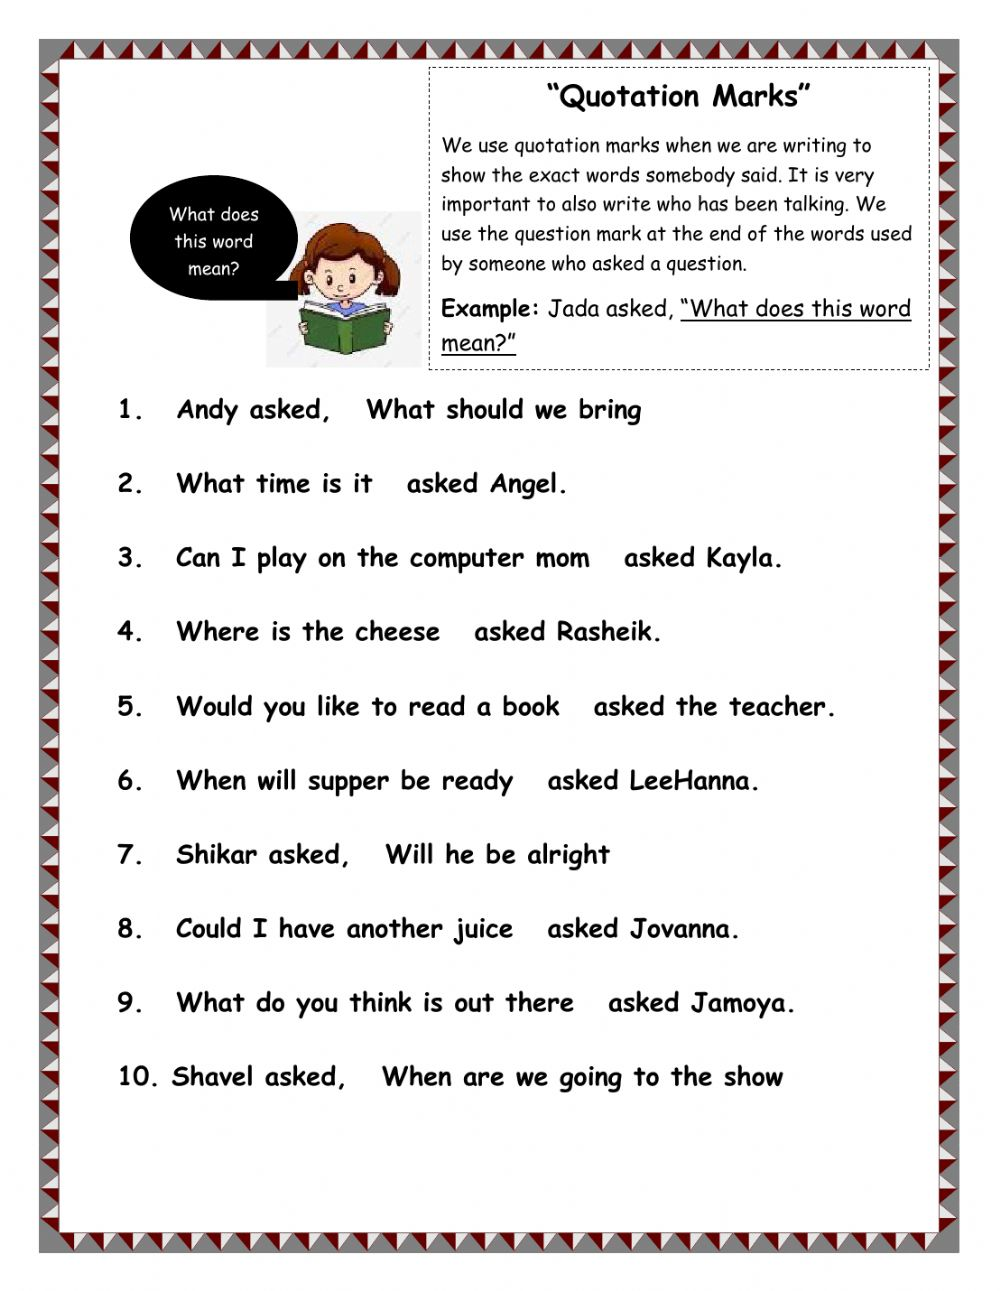 Quotation Marks Interactive worksheet